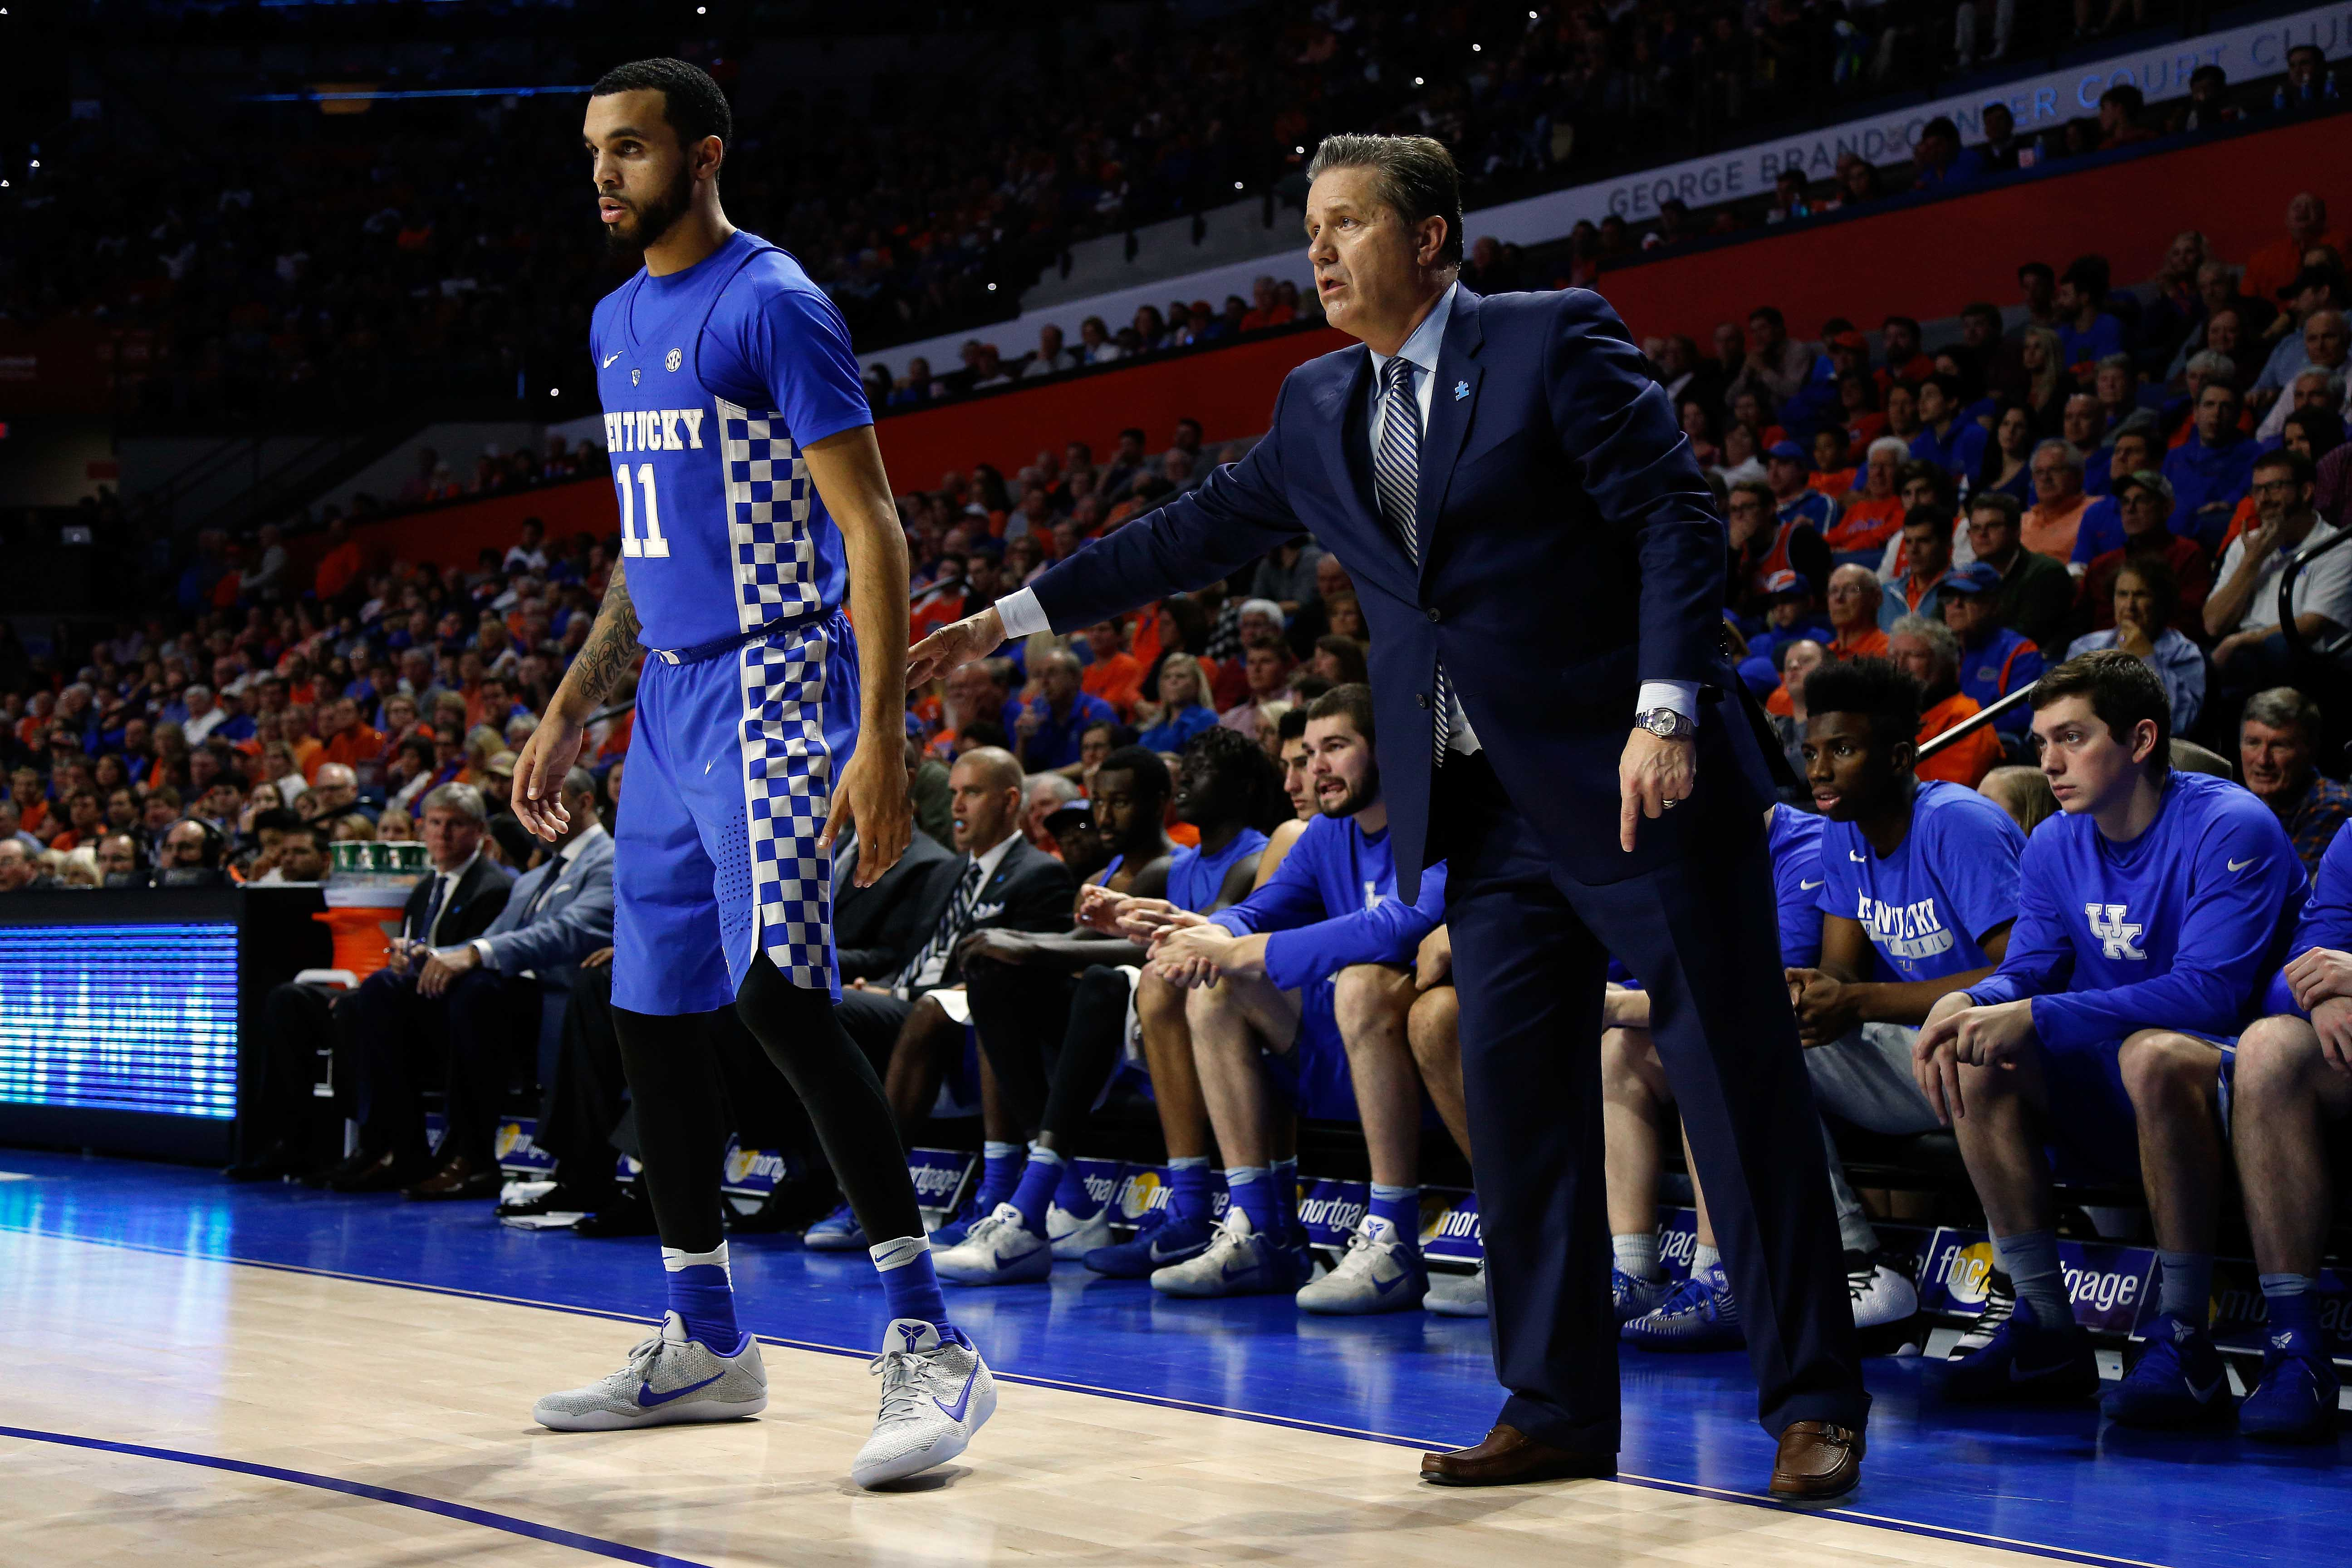 Kentucky Basketball And Football Getting New Uniforms: Kentucky Basketball And Football Uniform Changes Revealed